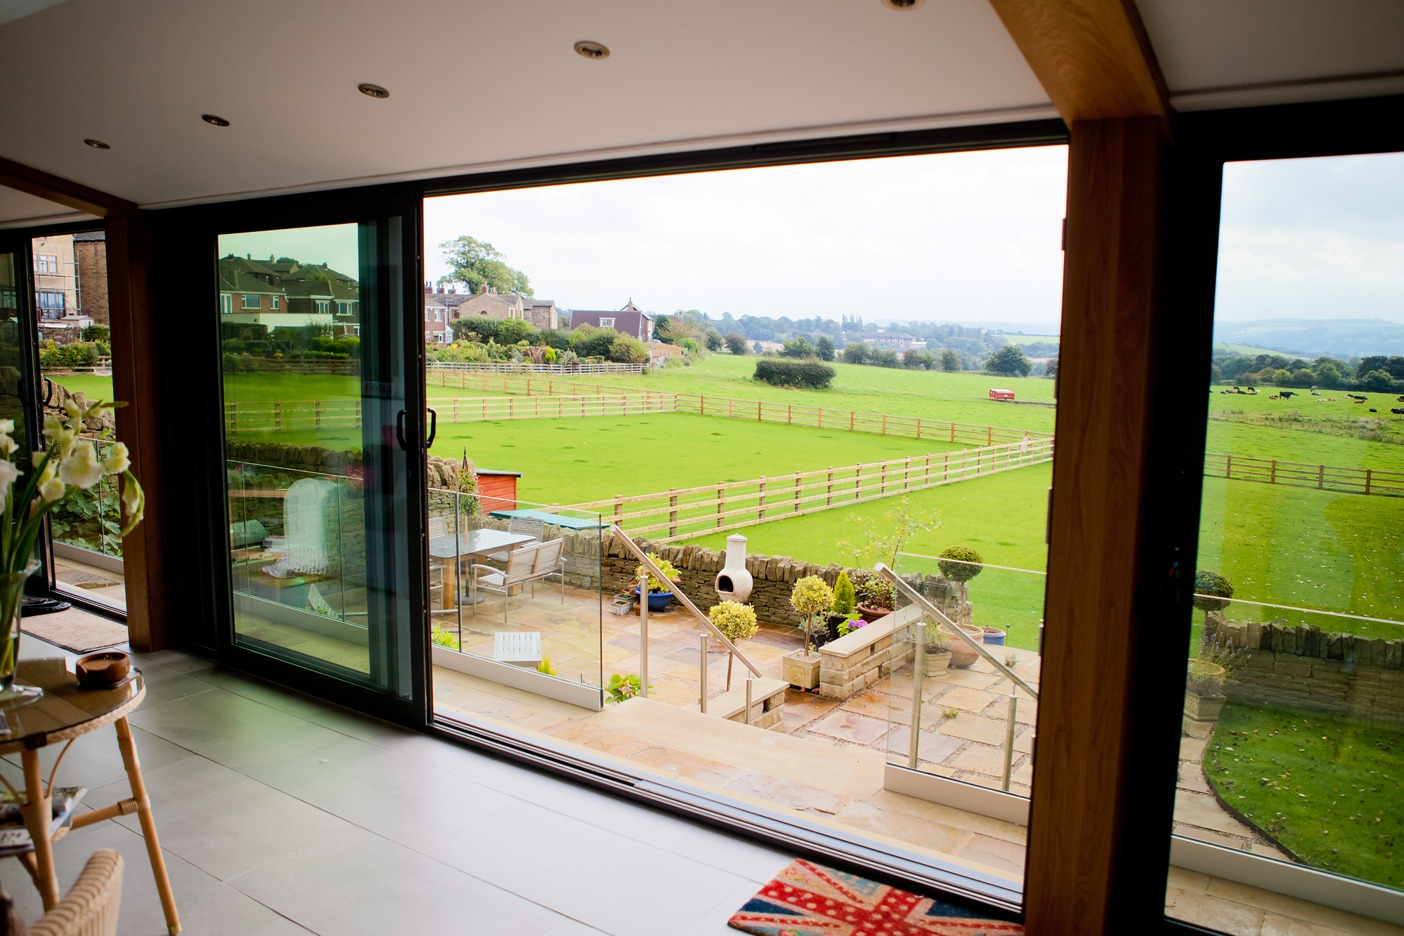 Sliding Doors Huddersfield & Clear View | Aluminium Doors | Aluminium Windows | Bi-Folding Doors ...